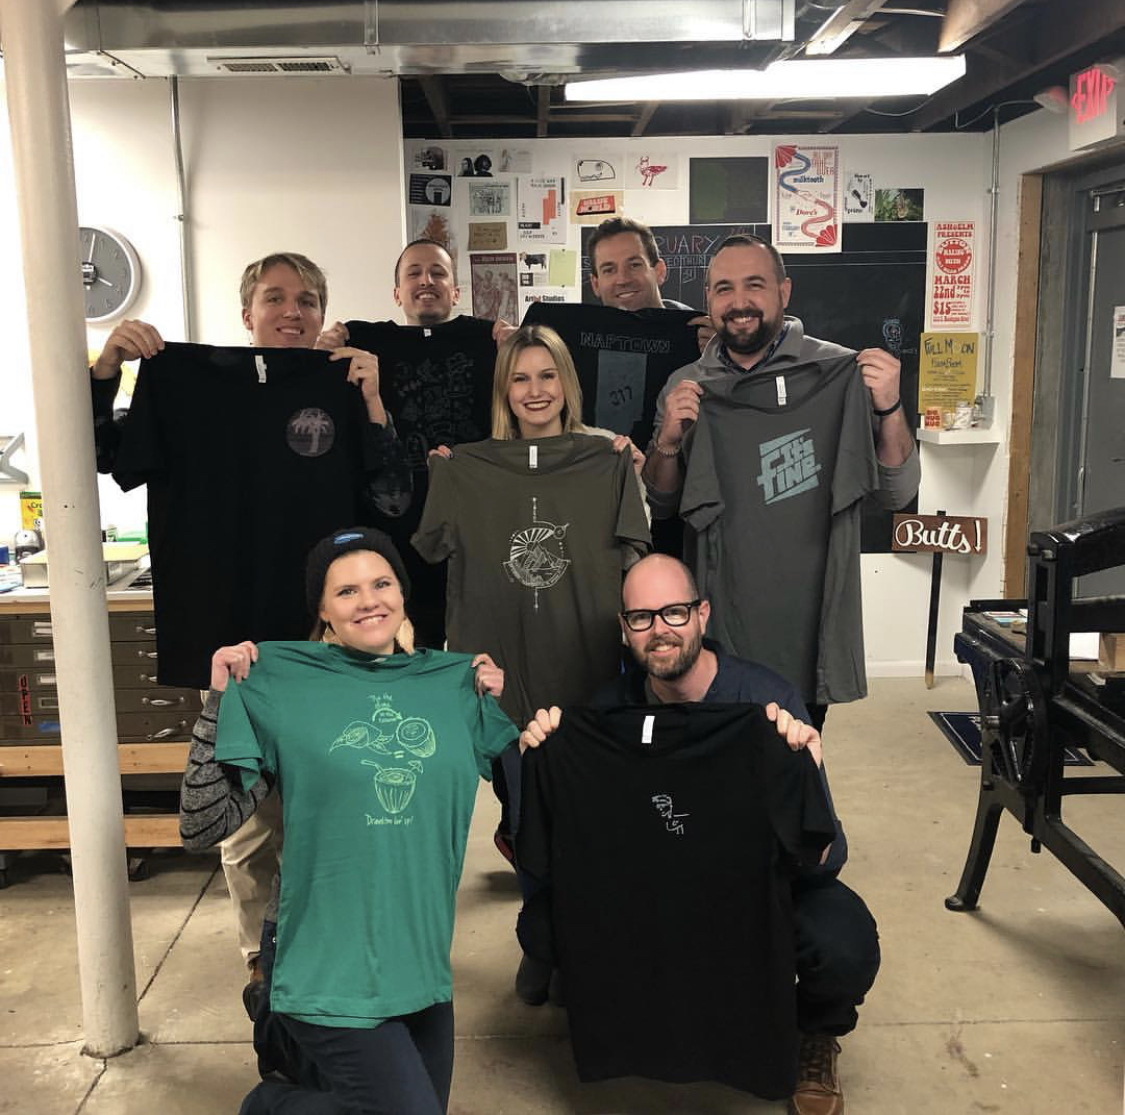 Salesforce creative team printed custom t-shirts during their workshop